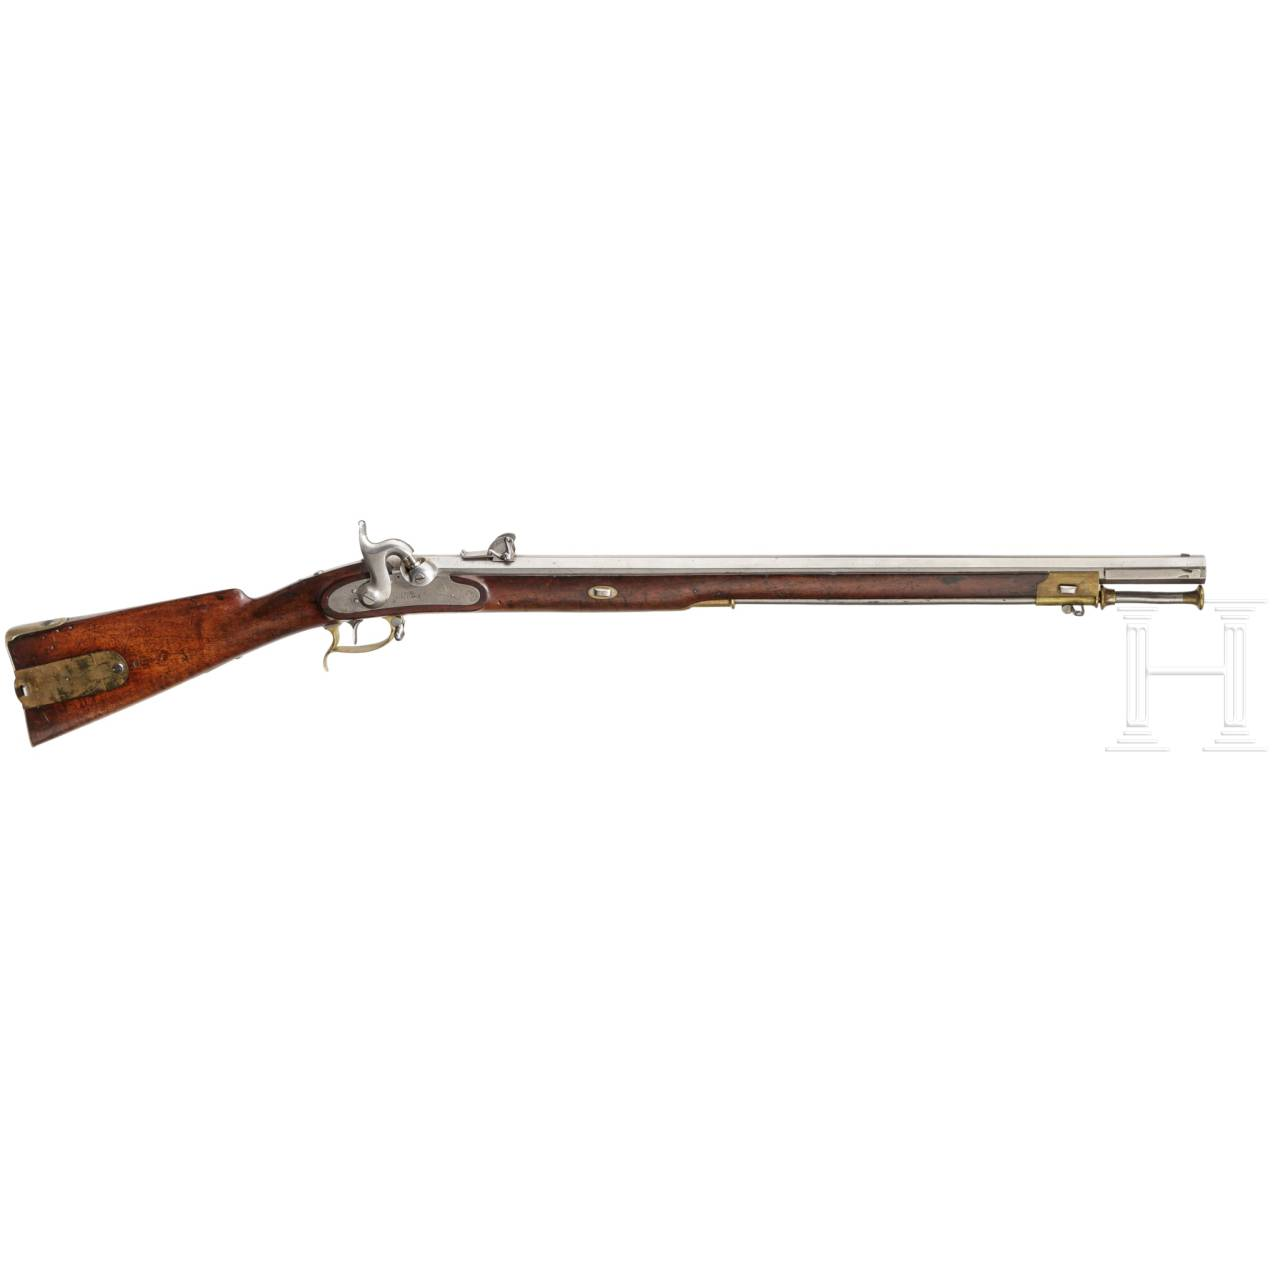 A model 1845 sniper rifle, Wild system, first model